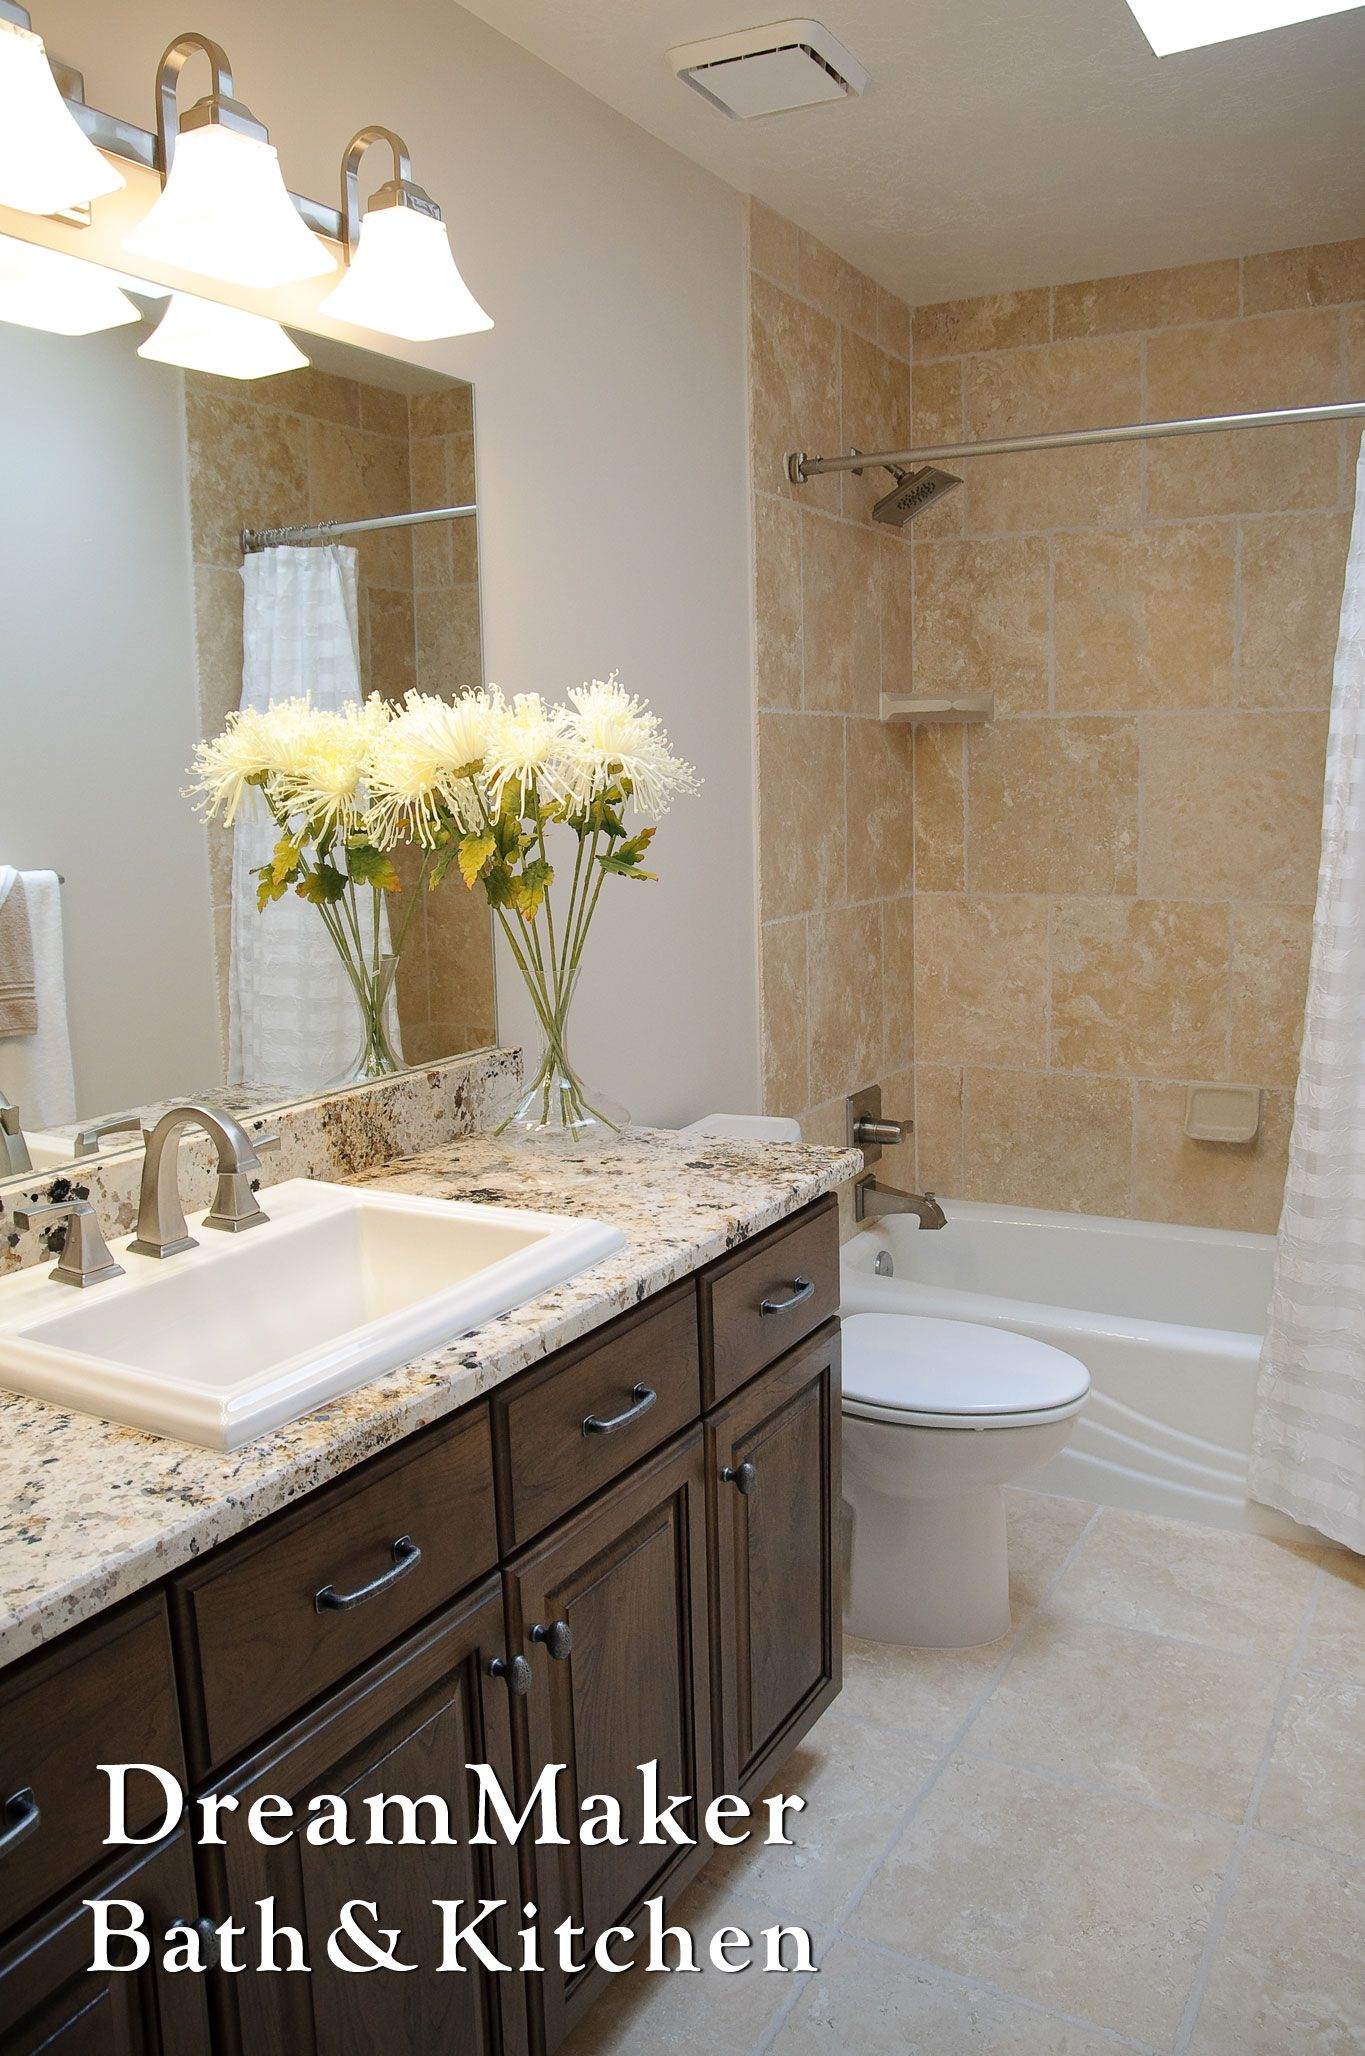 size local bathroom and full to remodel kitchen where remodeling rebuildplete renovations splurge of design on bath remodelers hgtv your average renovation bathrooms cost save